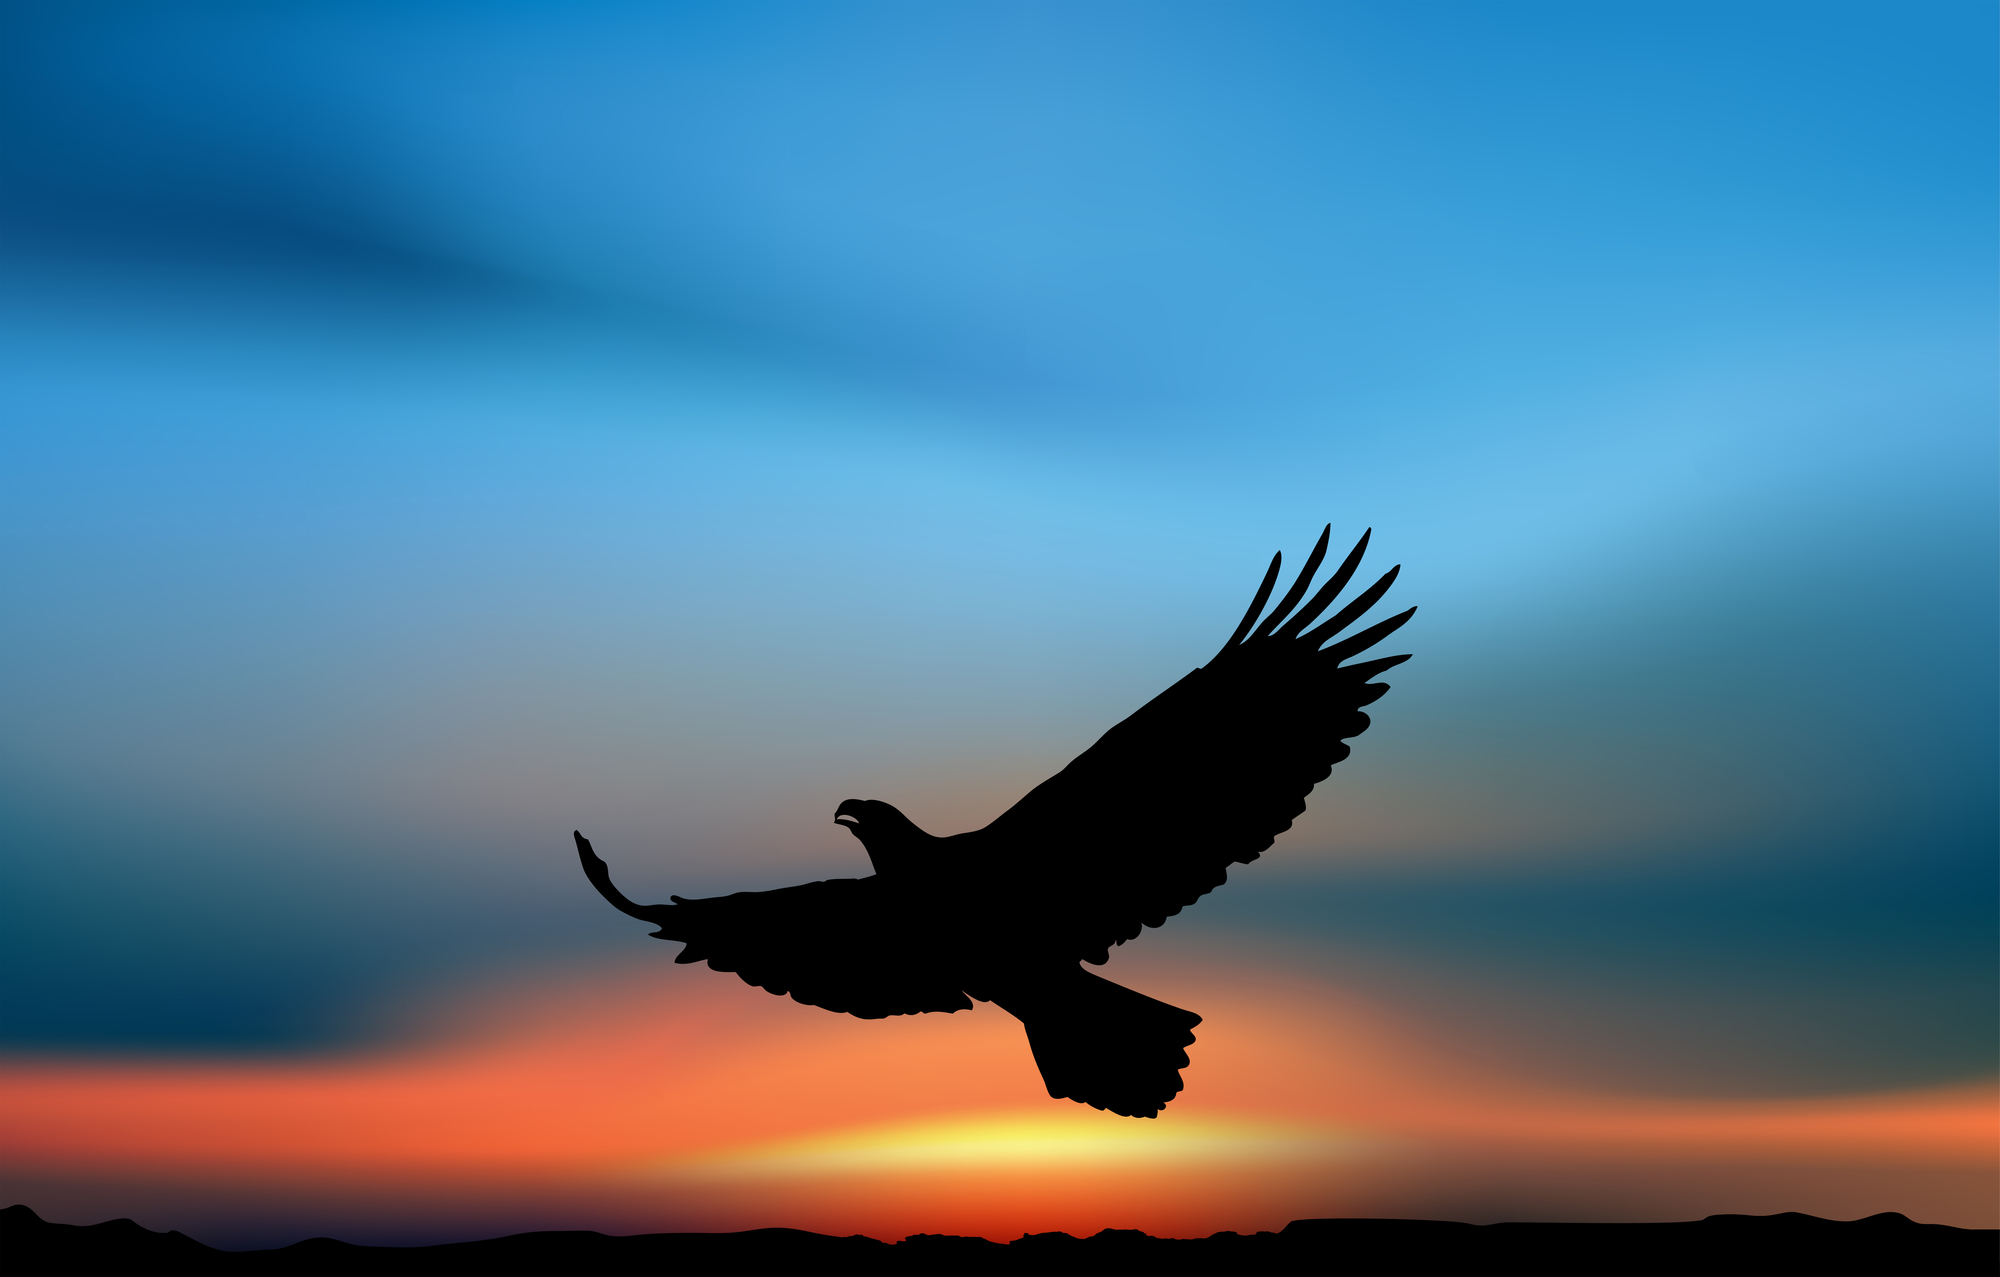 Flying eagle in the sunset